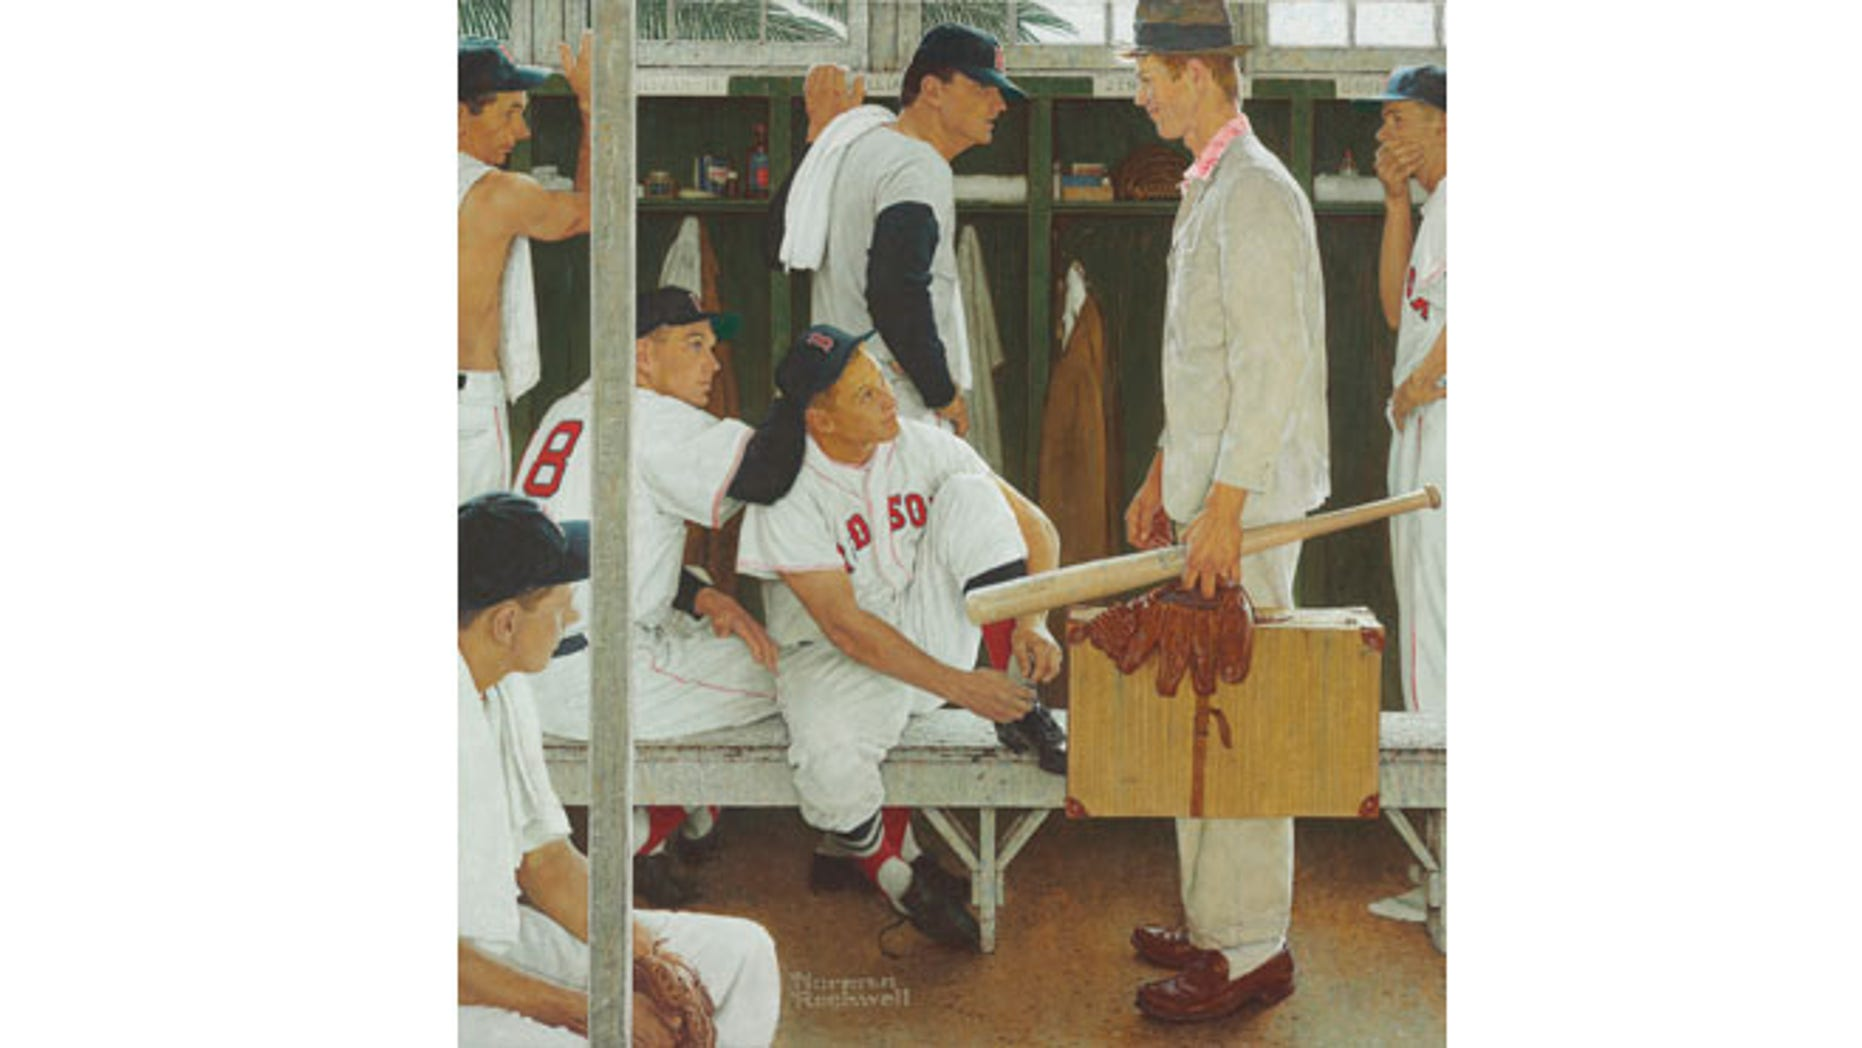 """This photograph of a 1957 Norman Rockwell painting, """"The Rookie (Red Sox Locker Room)"""" was provided Tuesday by Christie's auction house in New York. The painting, showing, pitcher Frank Sullivan, right fielder Jackie Jensen and catcher Sammy White, second baseman Billy Goodman and Hall of Famer Ted Williams, will be auctioned on May 22, with a pre-sale estimate of $20 million to $30 million."""